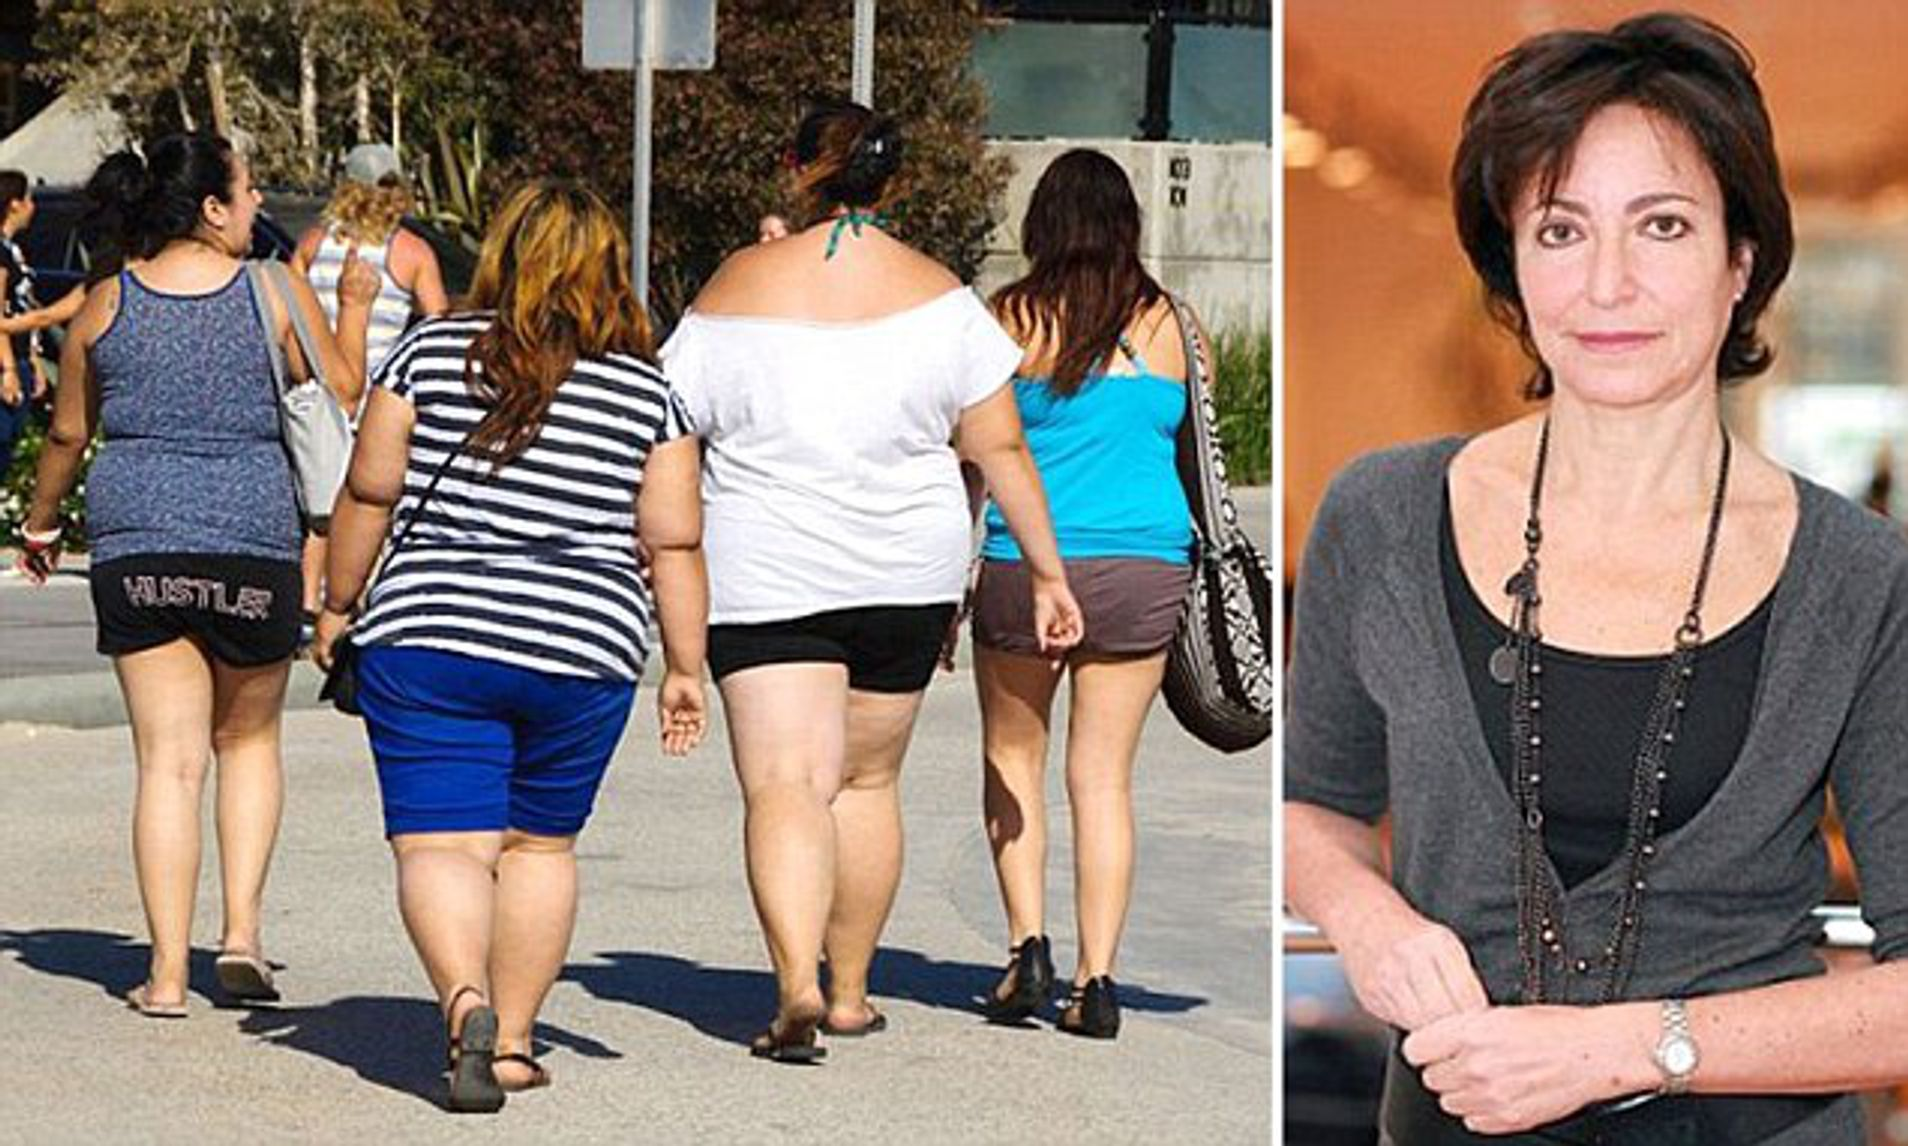 A Fat Chick Strikes Back Photos